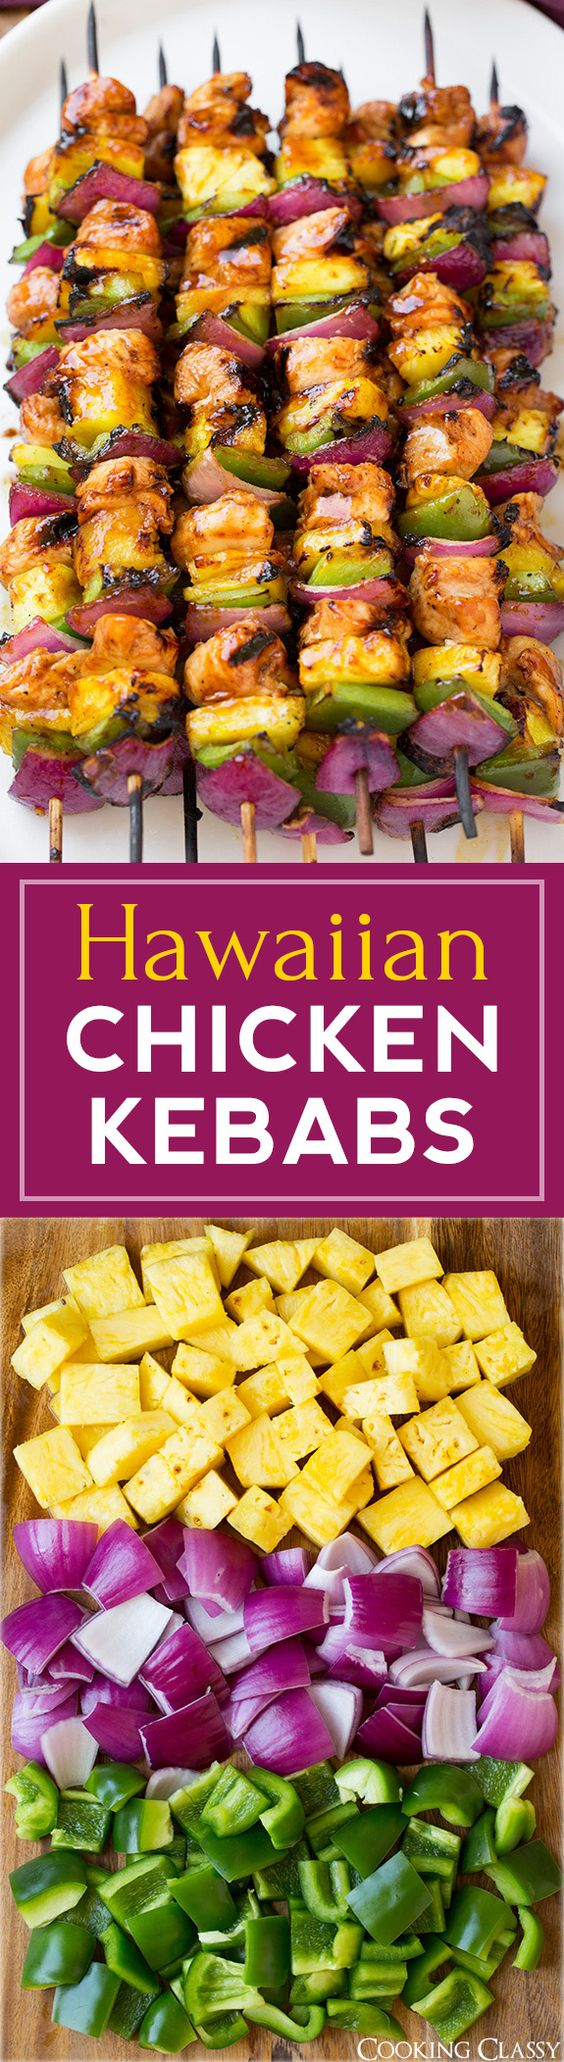 Hawaiian Chicken Kebabs - Cooking Classy Hawaiian Chicken Kebabs - these are incredibly DELICIOUS! My husband and I loved them! Perfect for a summer meal.: